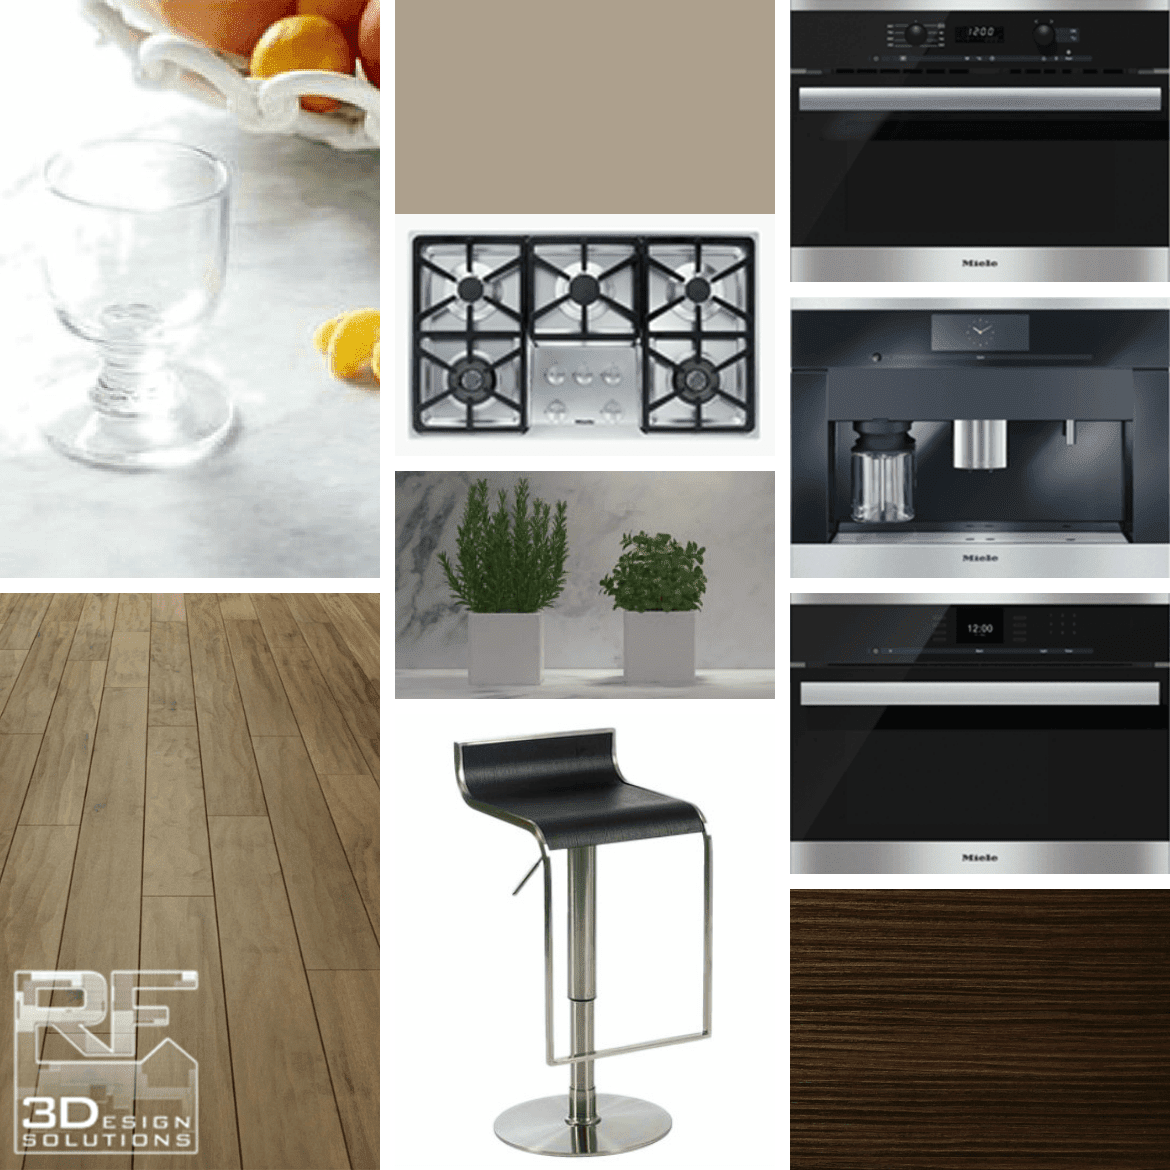 RF 3Design Solutions Kitchen Mood Board